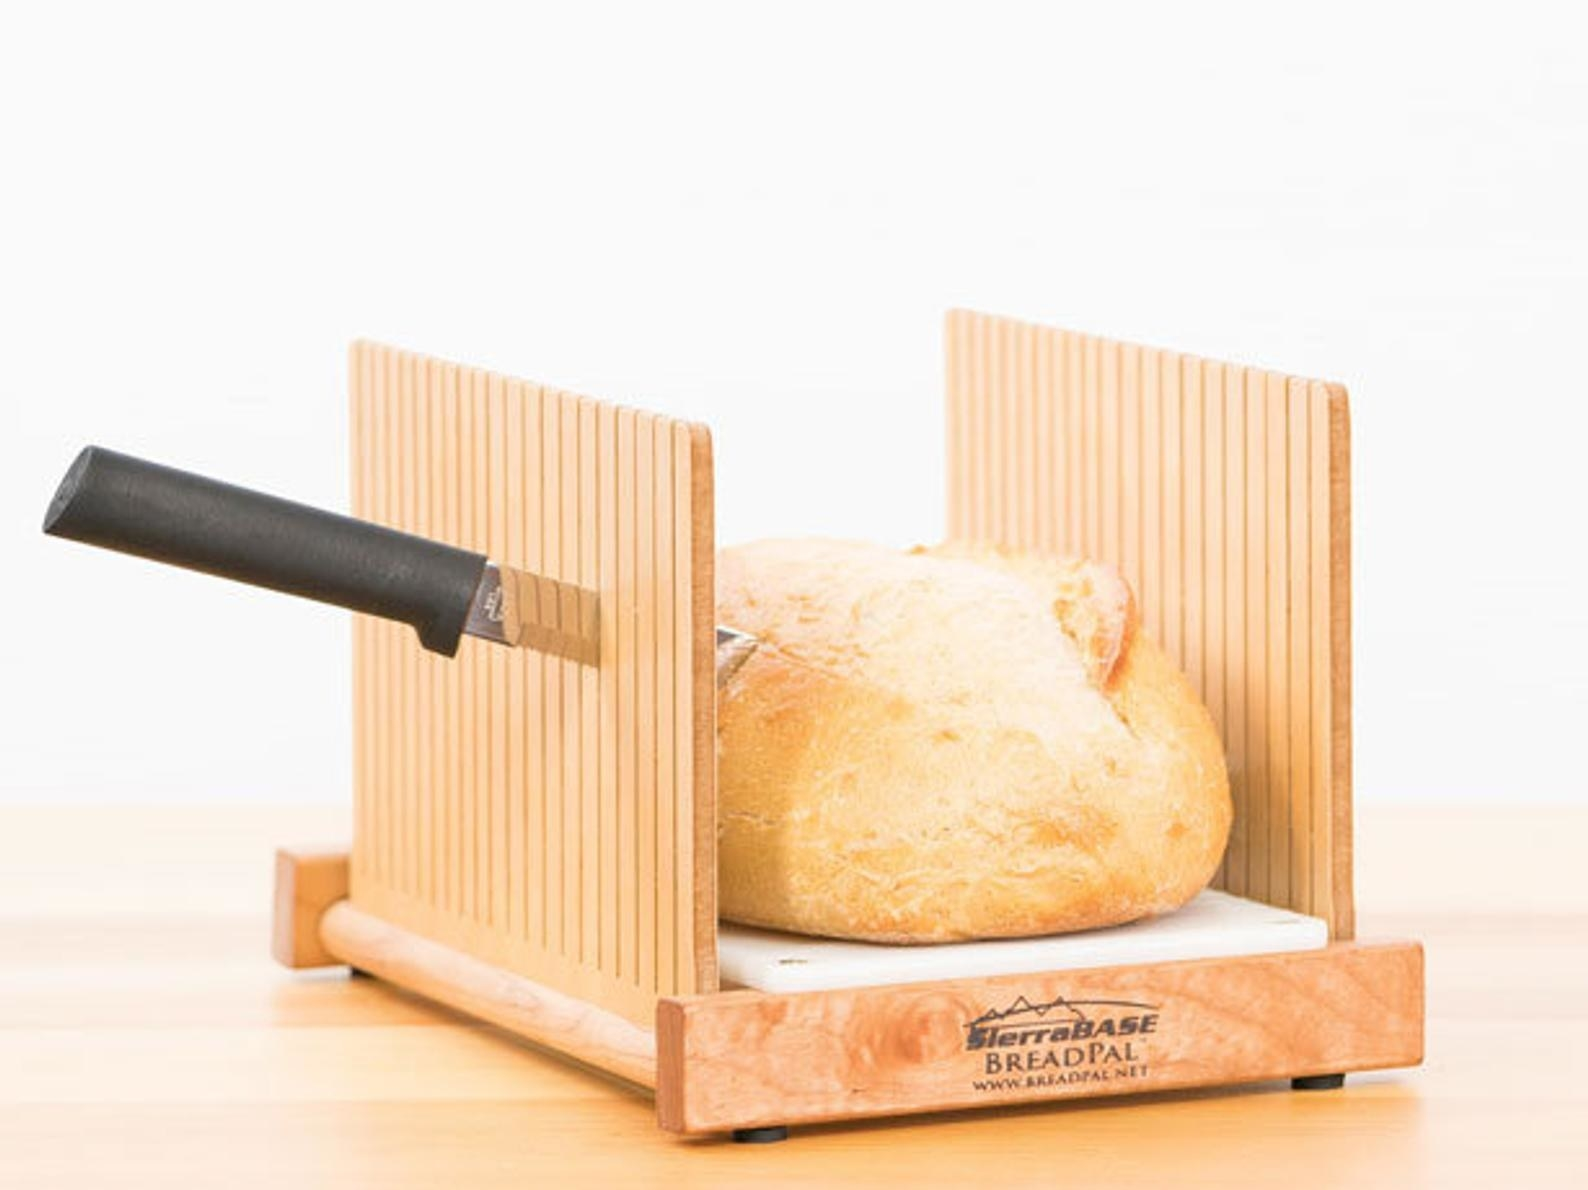 The wooden bread slicer, with a knife cutting between the slats and through the loaf